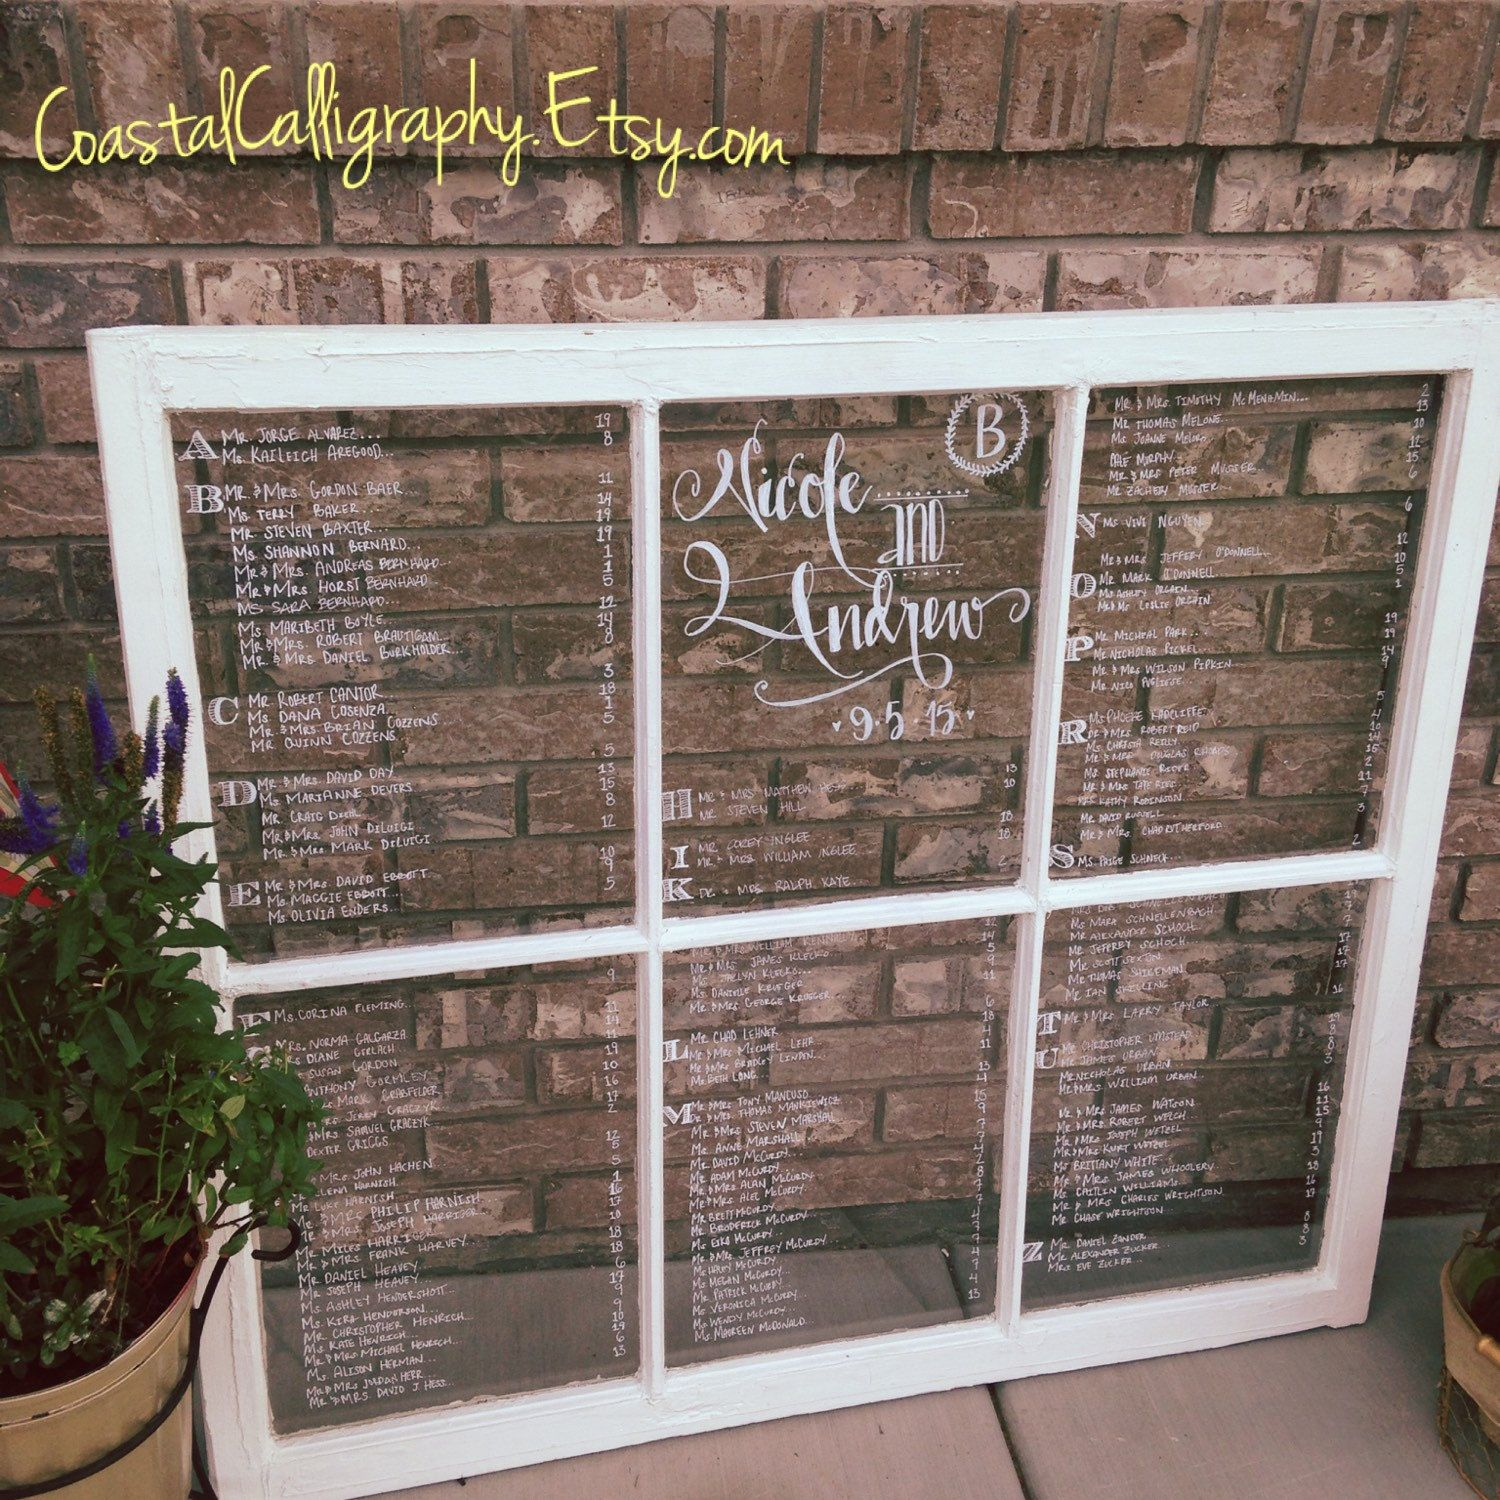 Wood window seating charts for weddings and other events chart wedding also best rustic images custom design rh pinterest